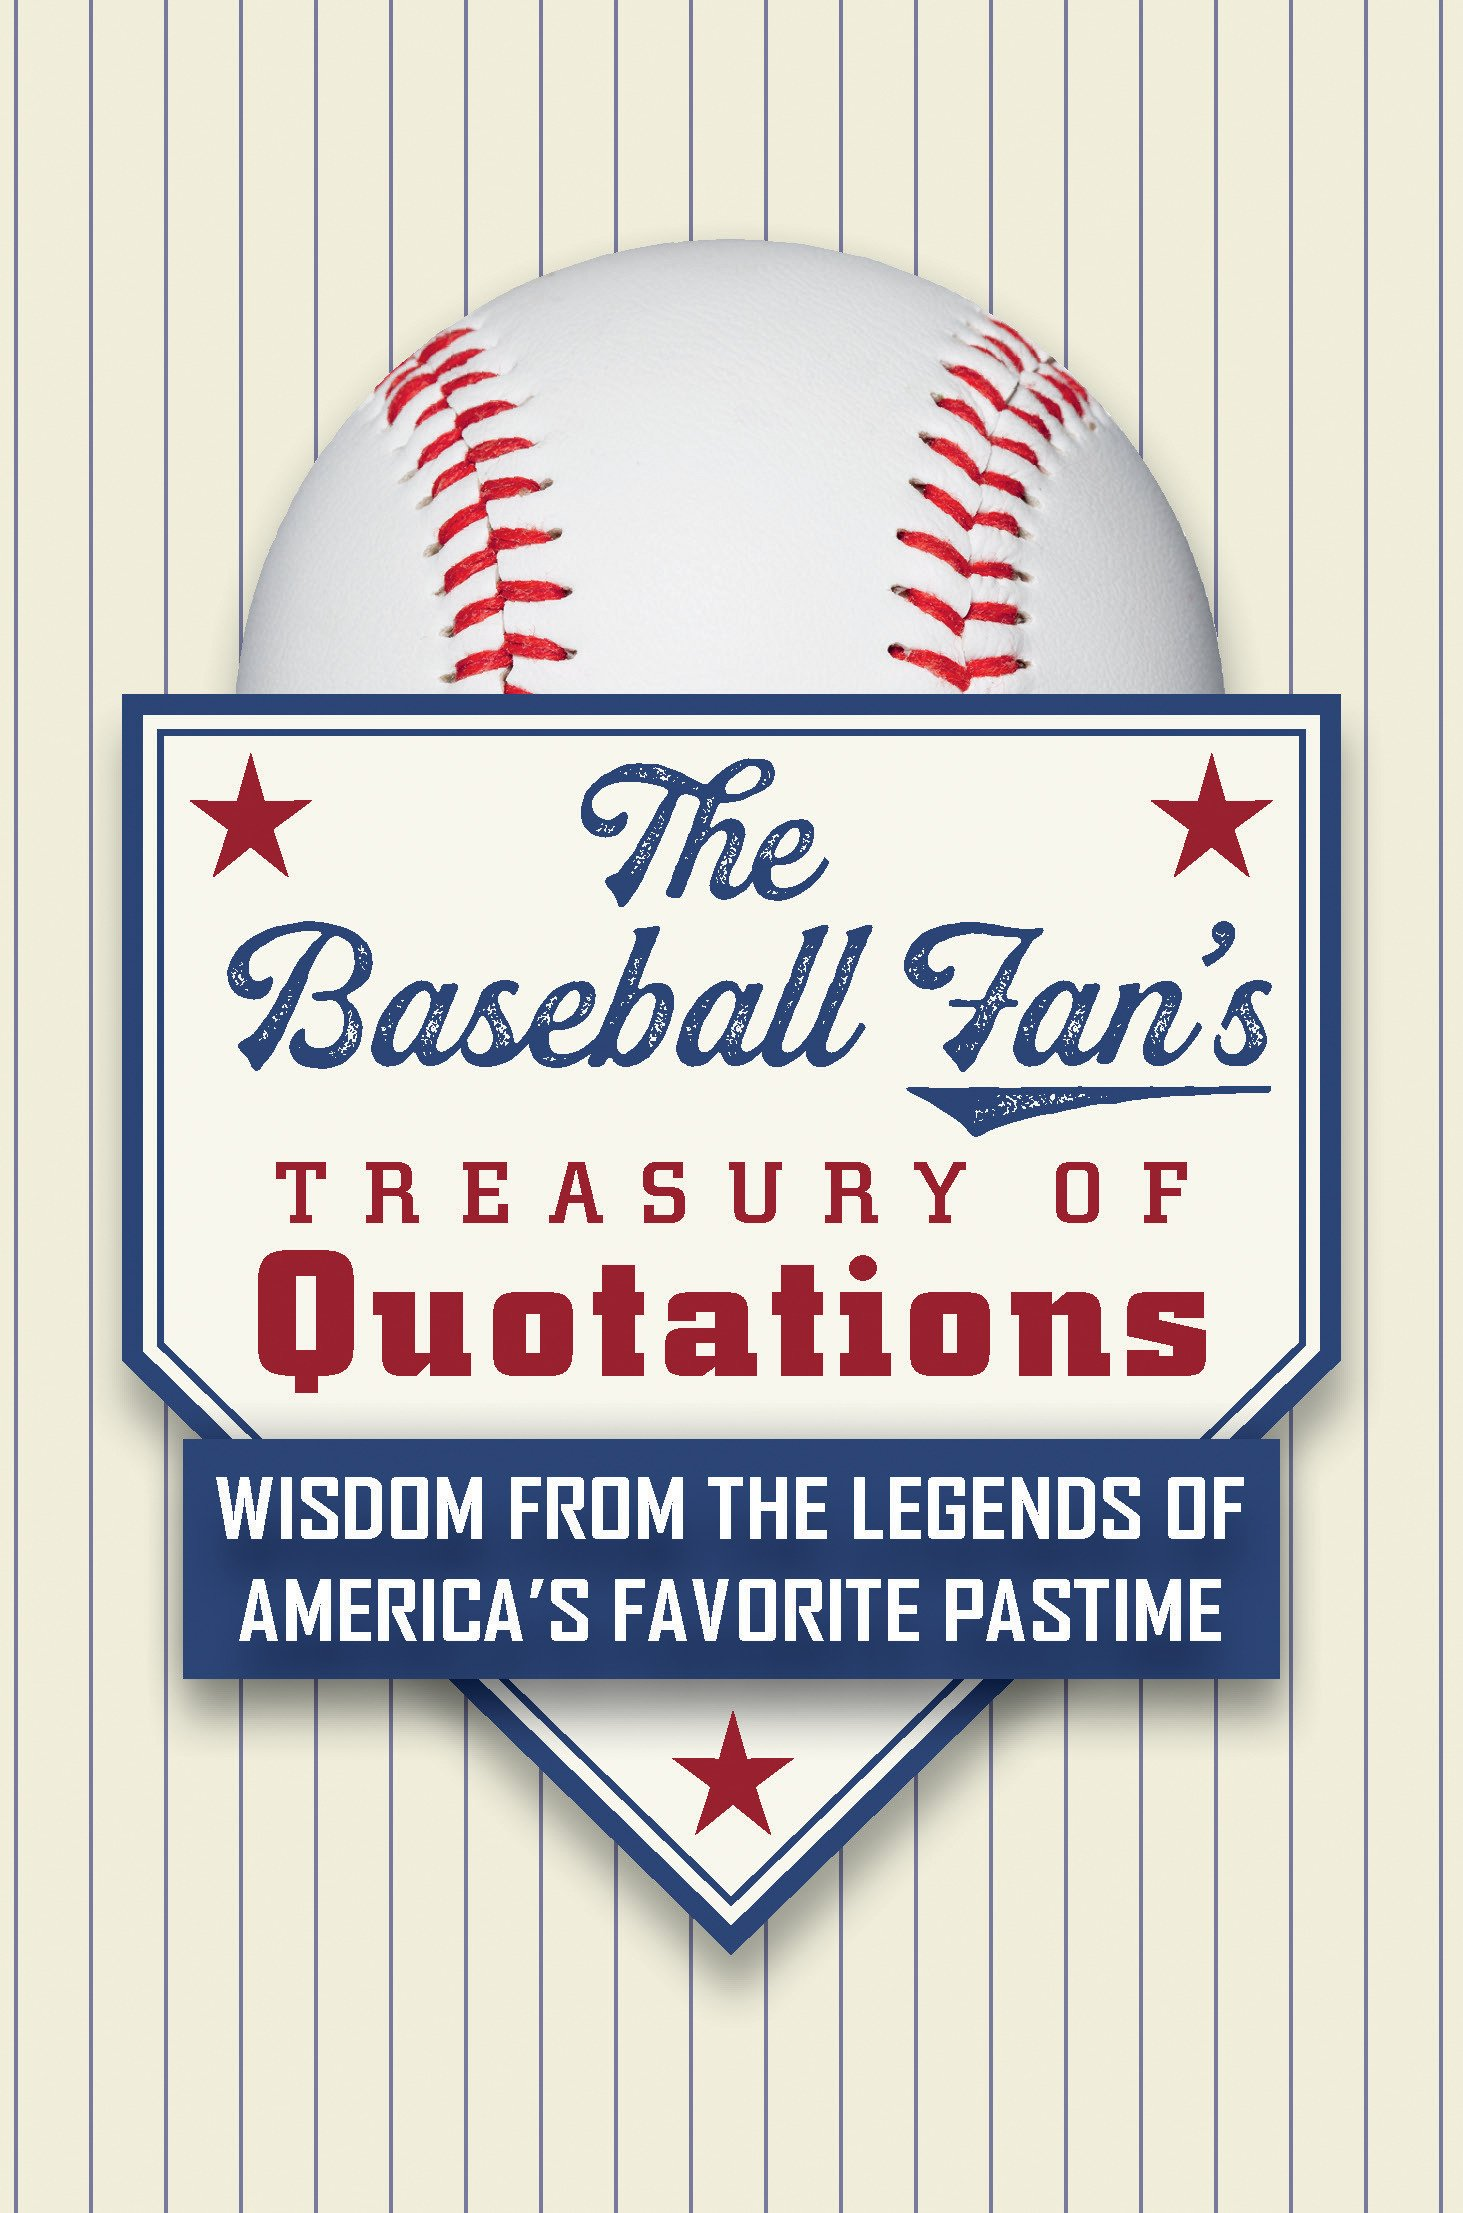 Image OfThe Baseball Fan's Treasury Of Quotations: Wisdom From The Legends Of America's Favorite Pastime (English Edition)